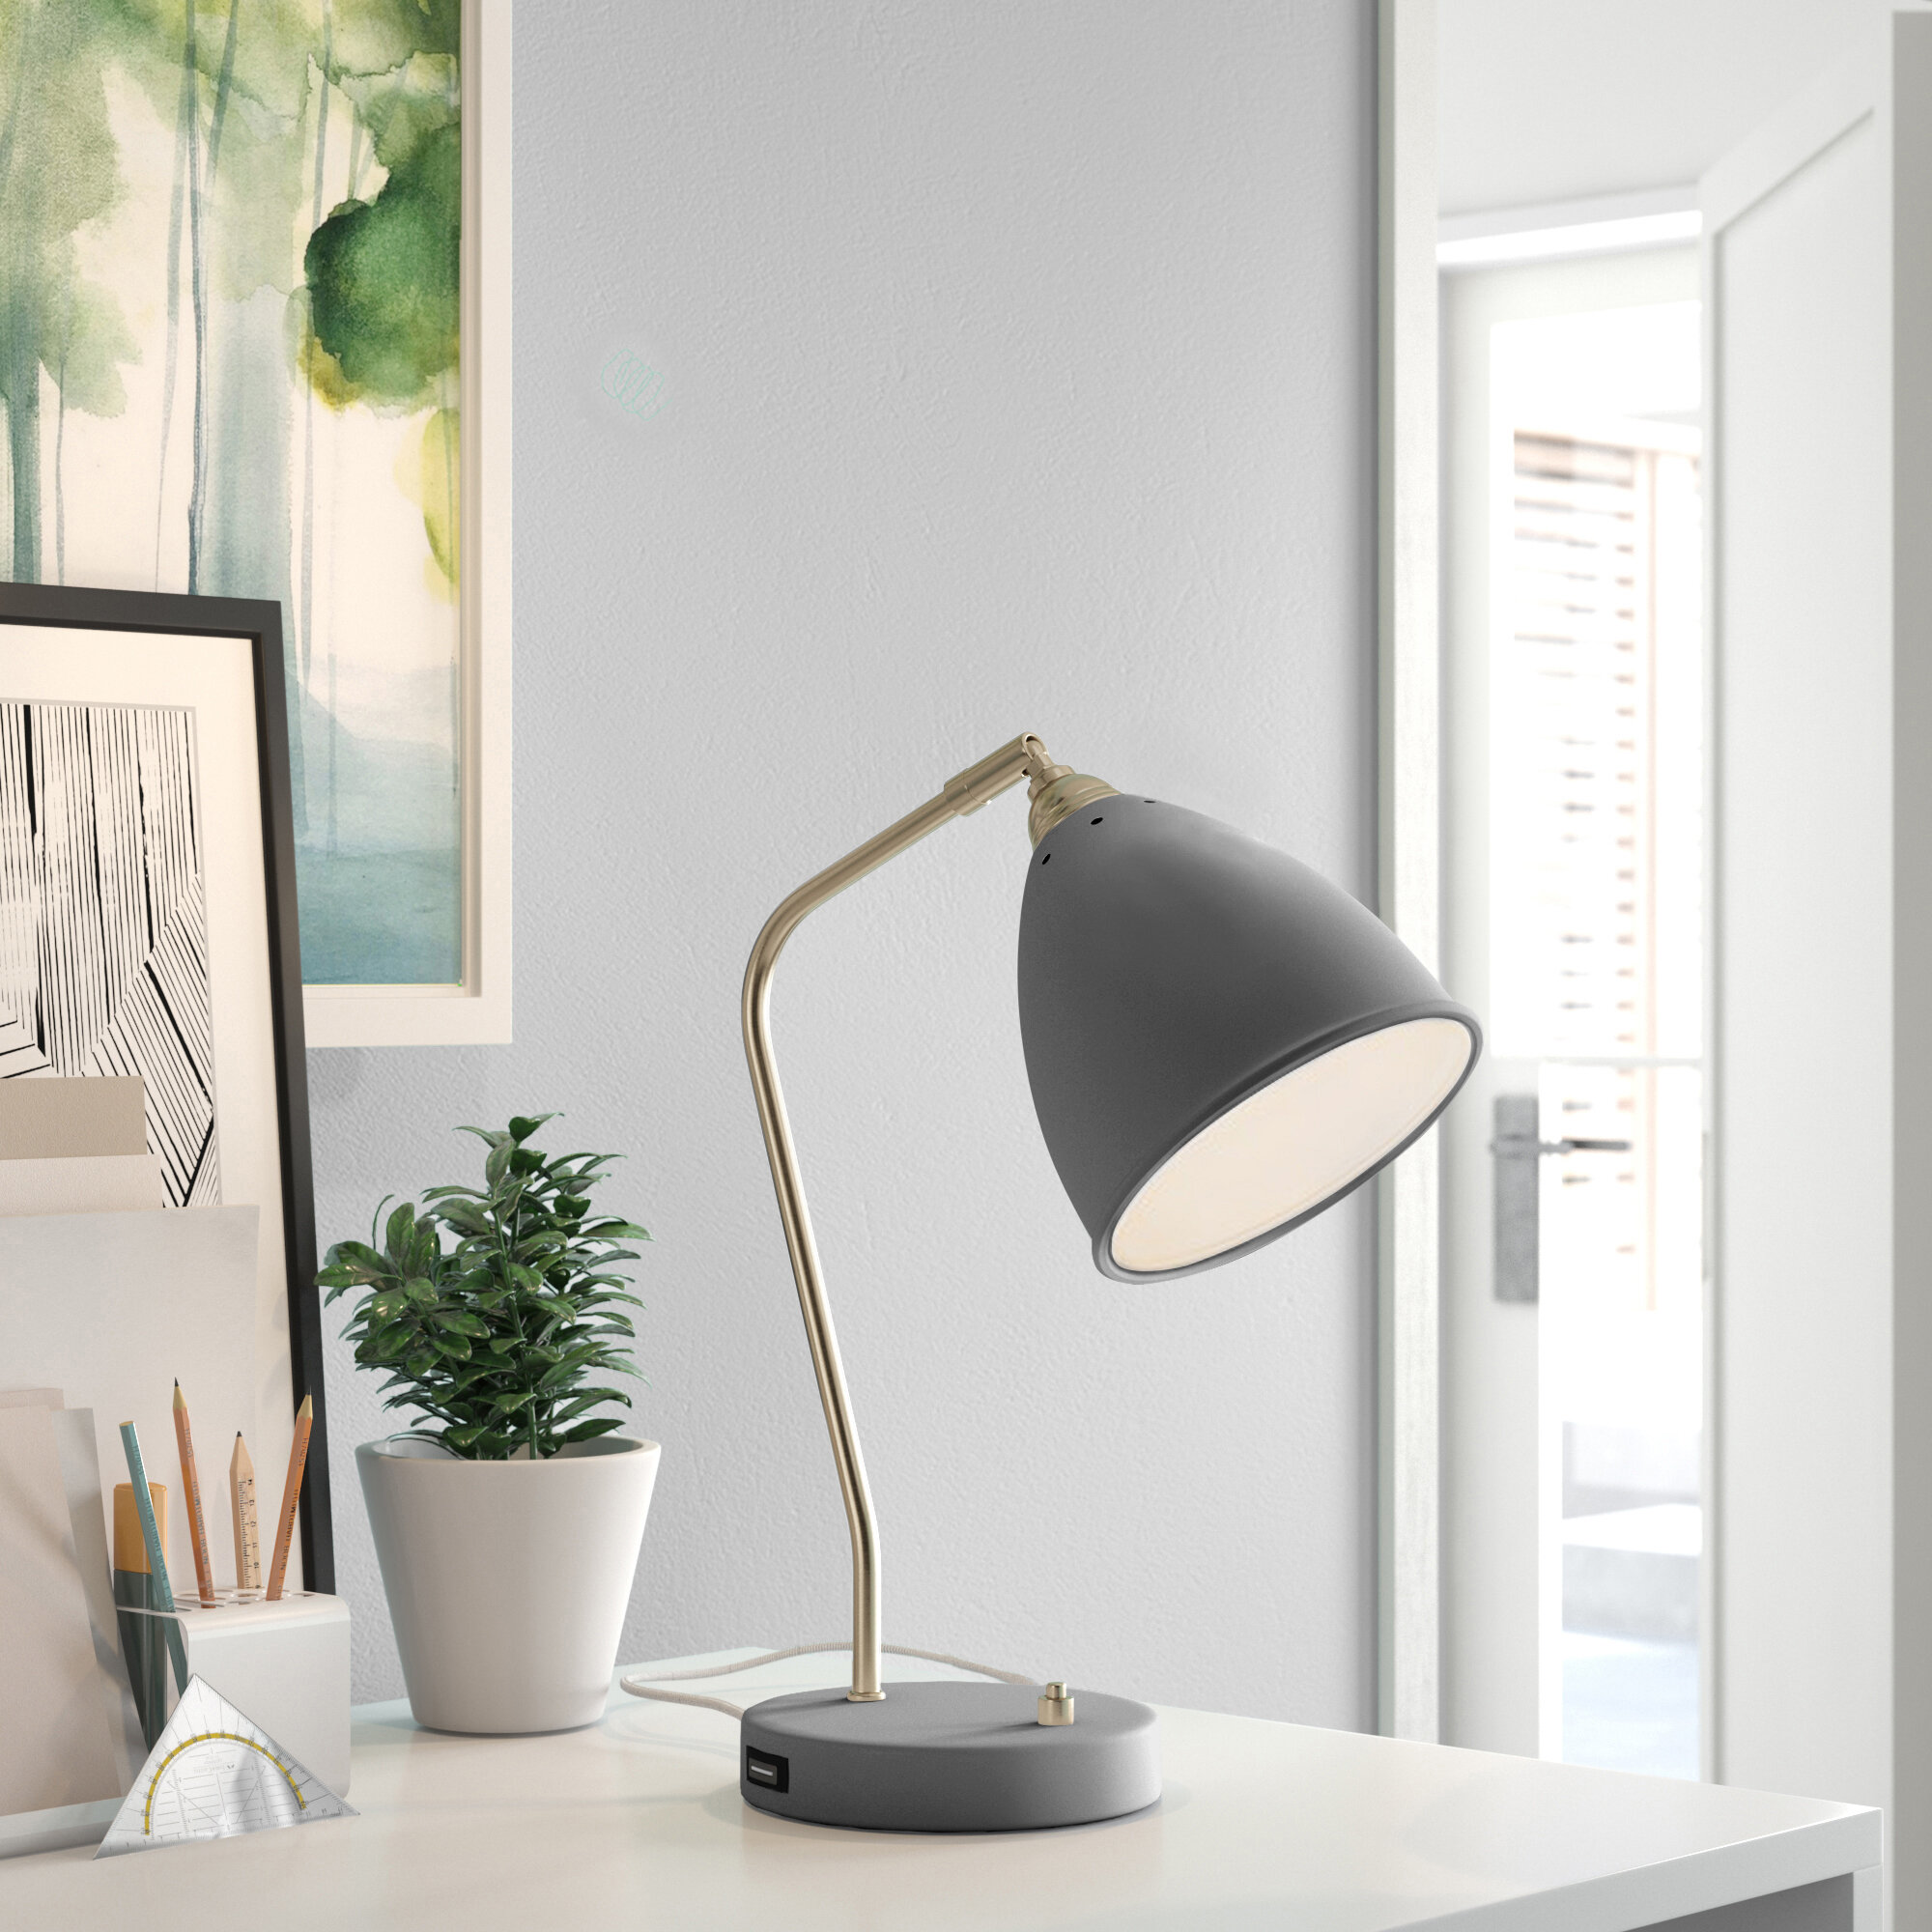 Tripod Desk Lamp Table Lamp With Grey Shade Home Office Study Night Light New